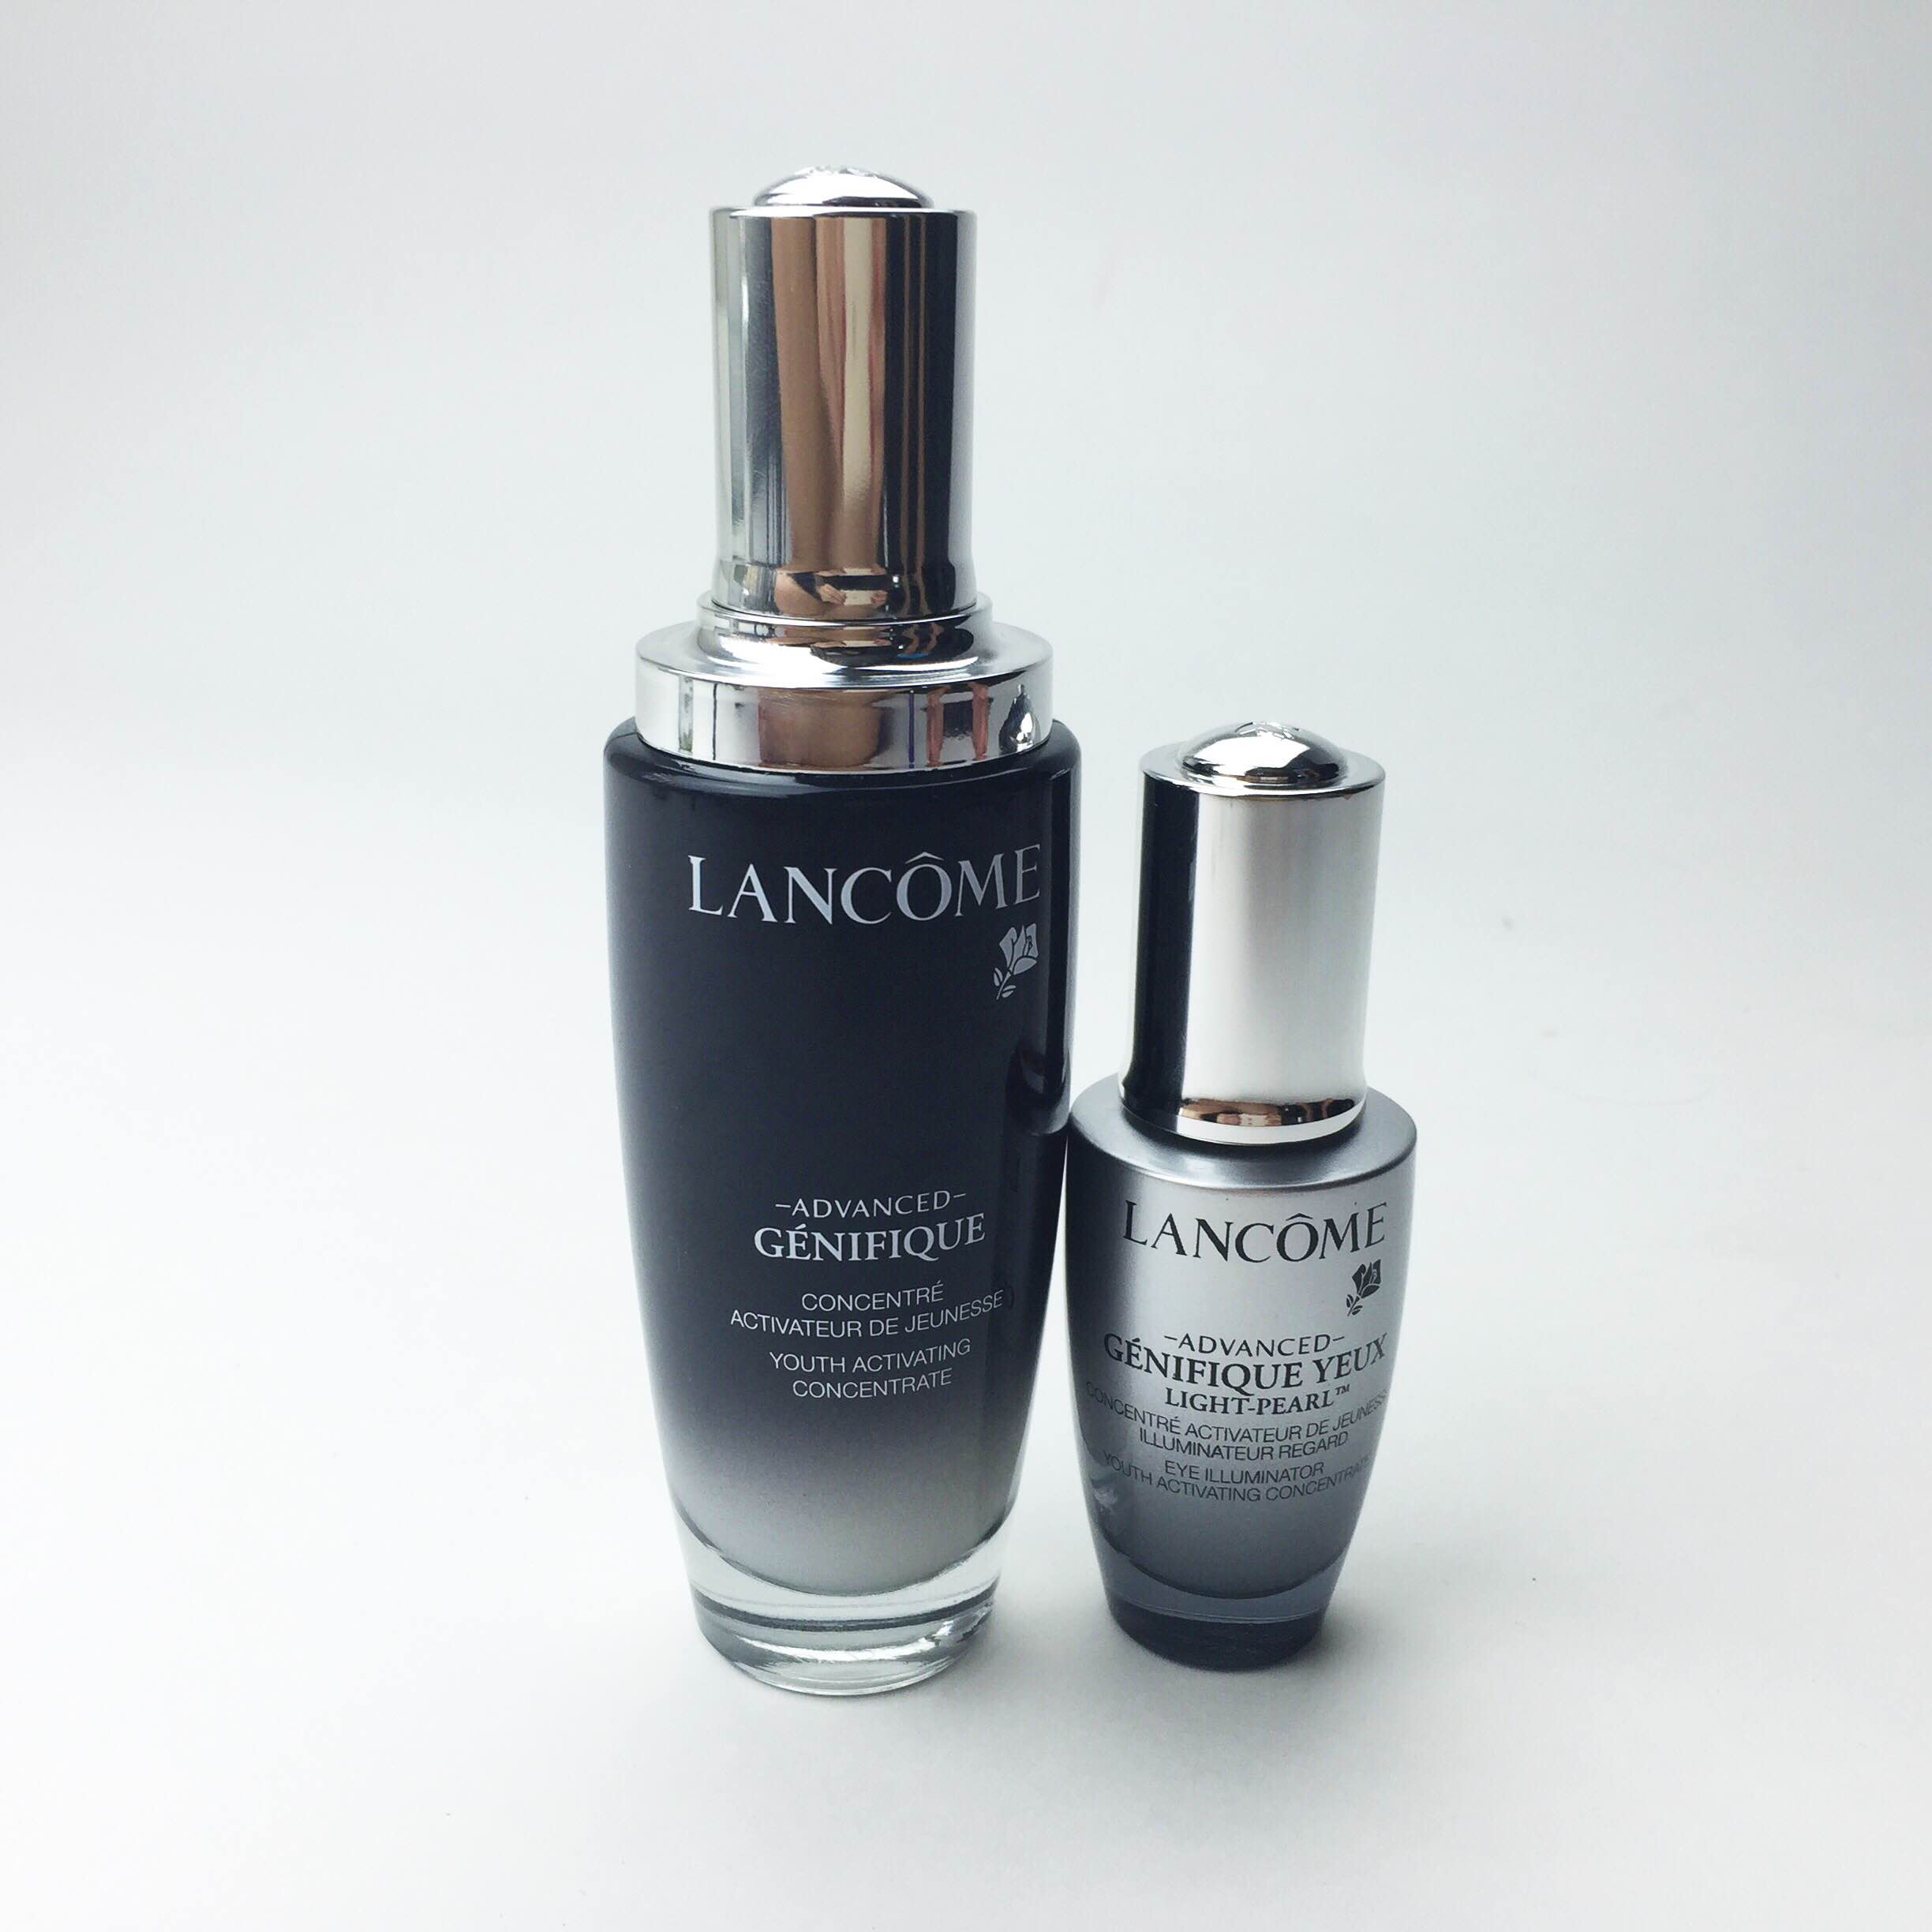 Lancôme Advanced Genifique & Renergie Trio Tutorial & Review